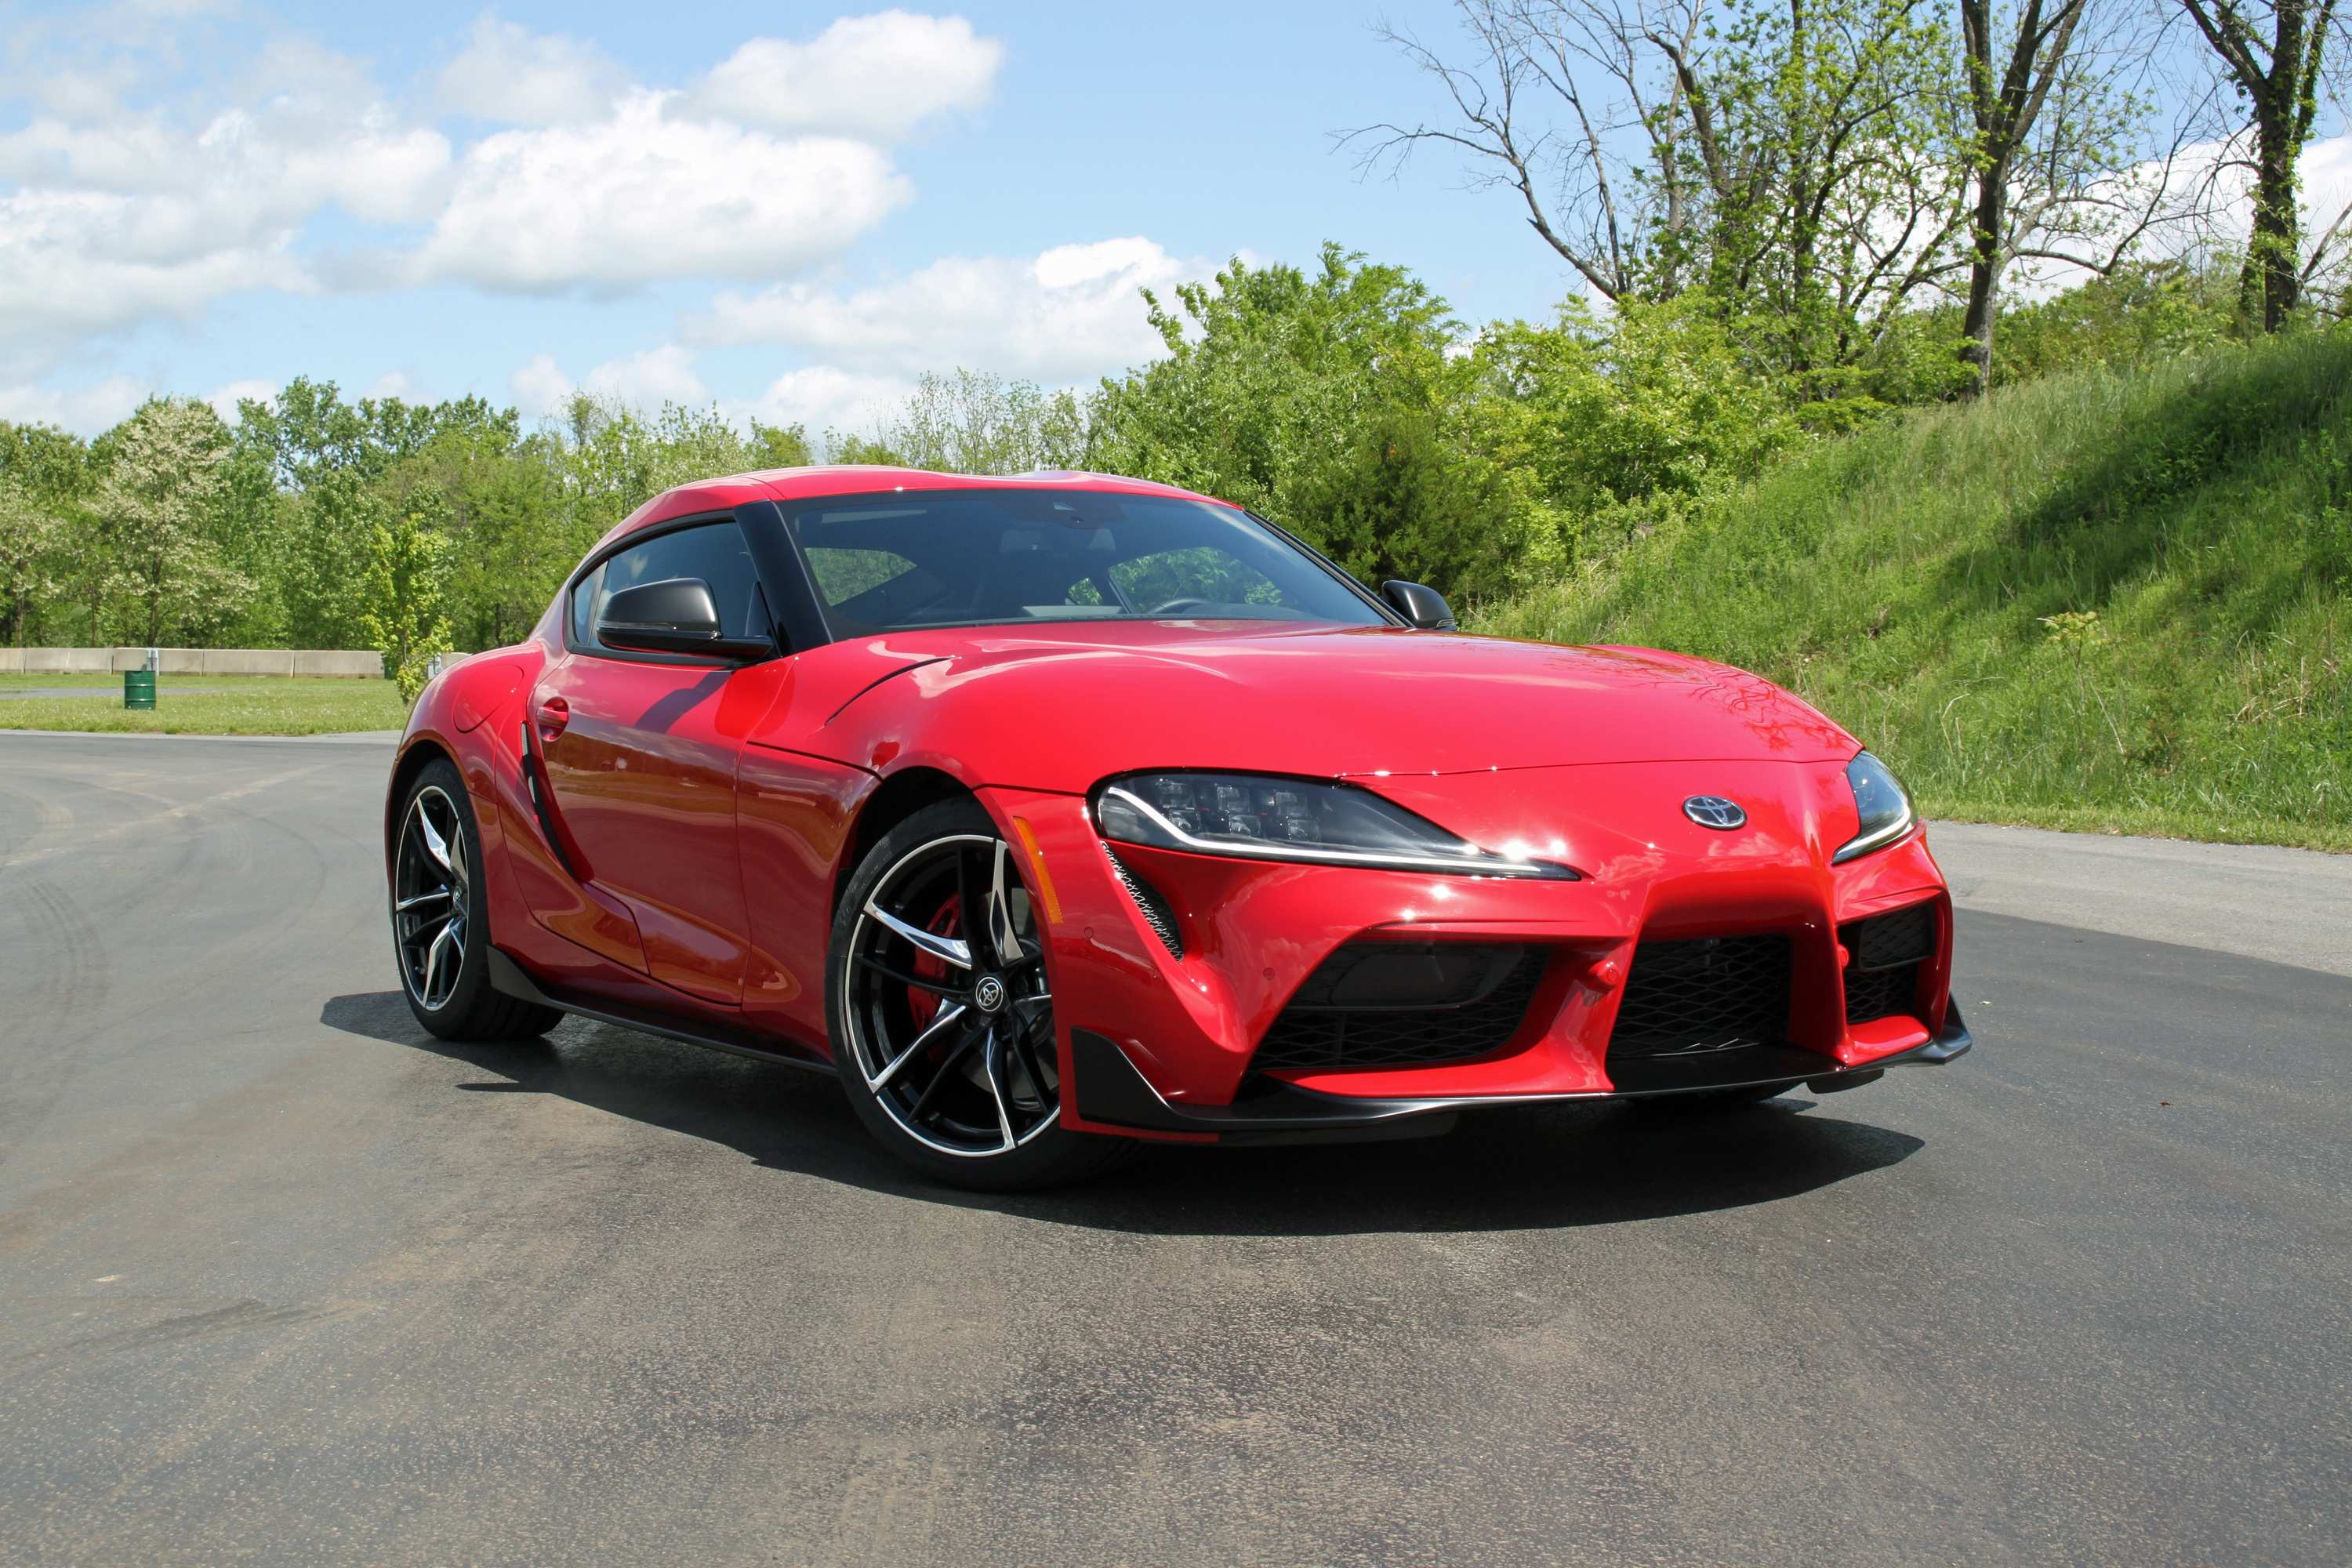 96 All New Toyota Supra 2020 BMW Price And Release Date